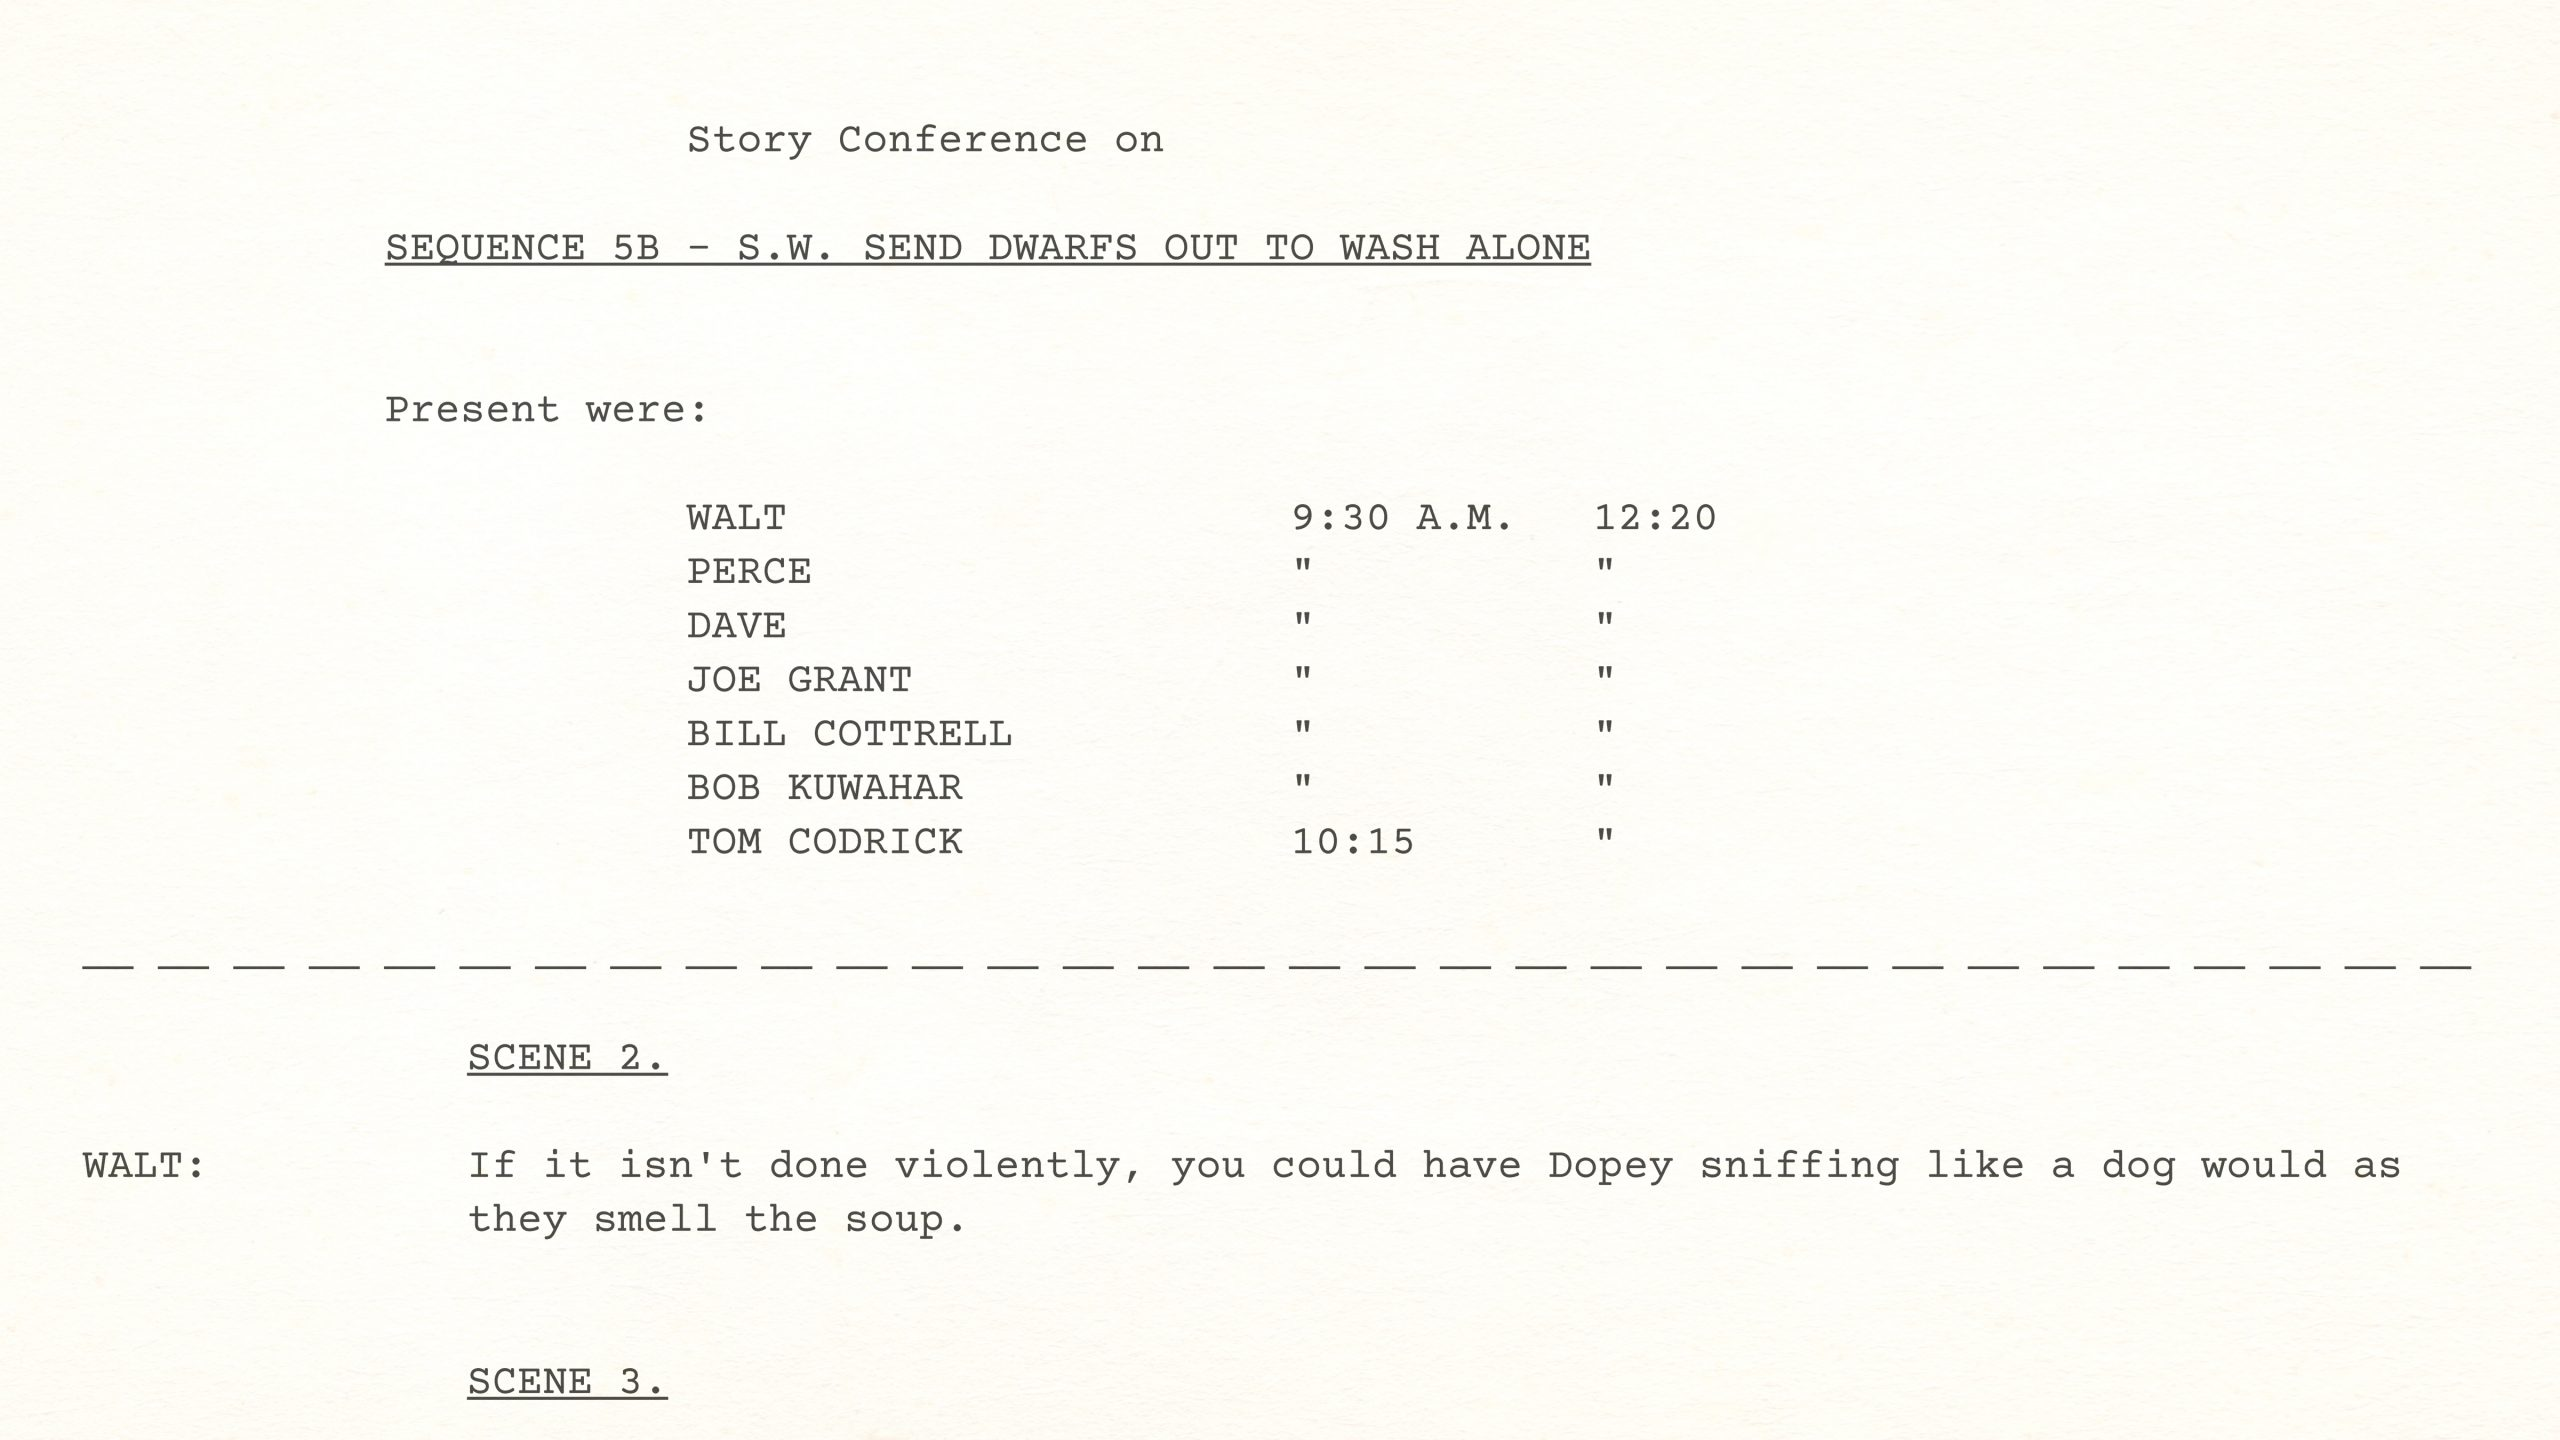 Walt Disney Story Conference on Snow White's SEND DWARFS OUT TO WASH ALONE (SEQUENCE 5B), August 8, 1936